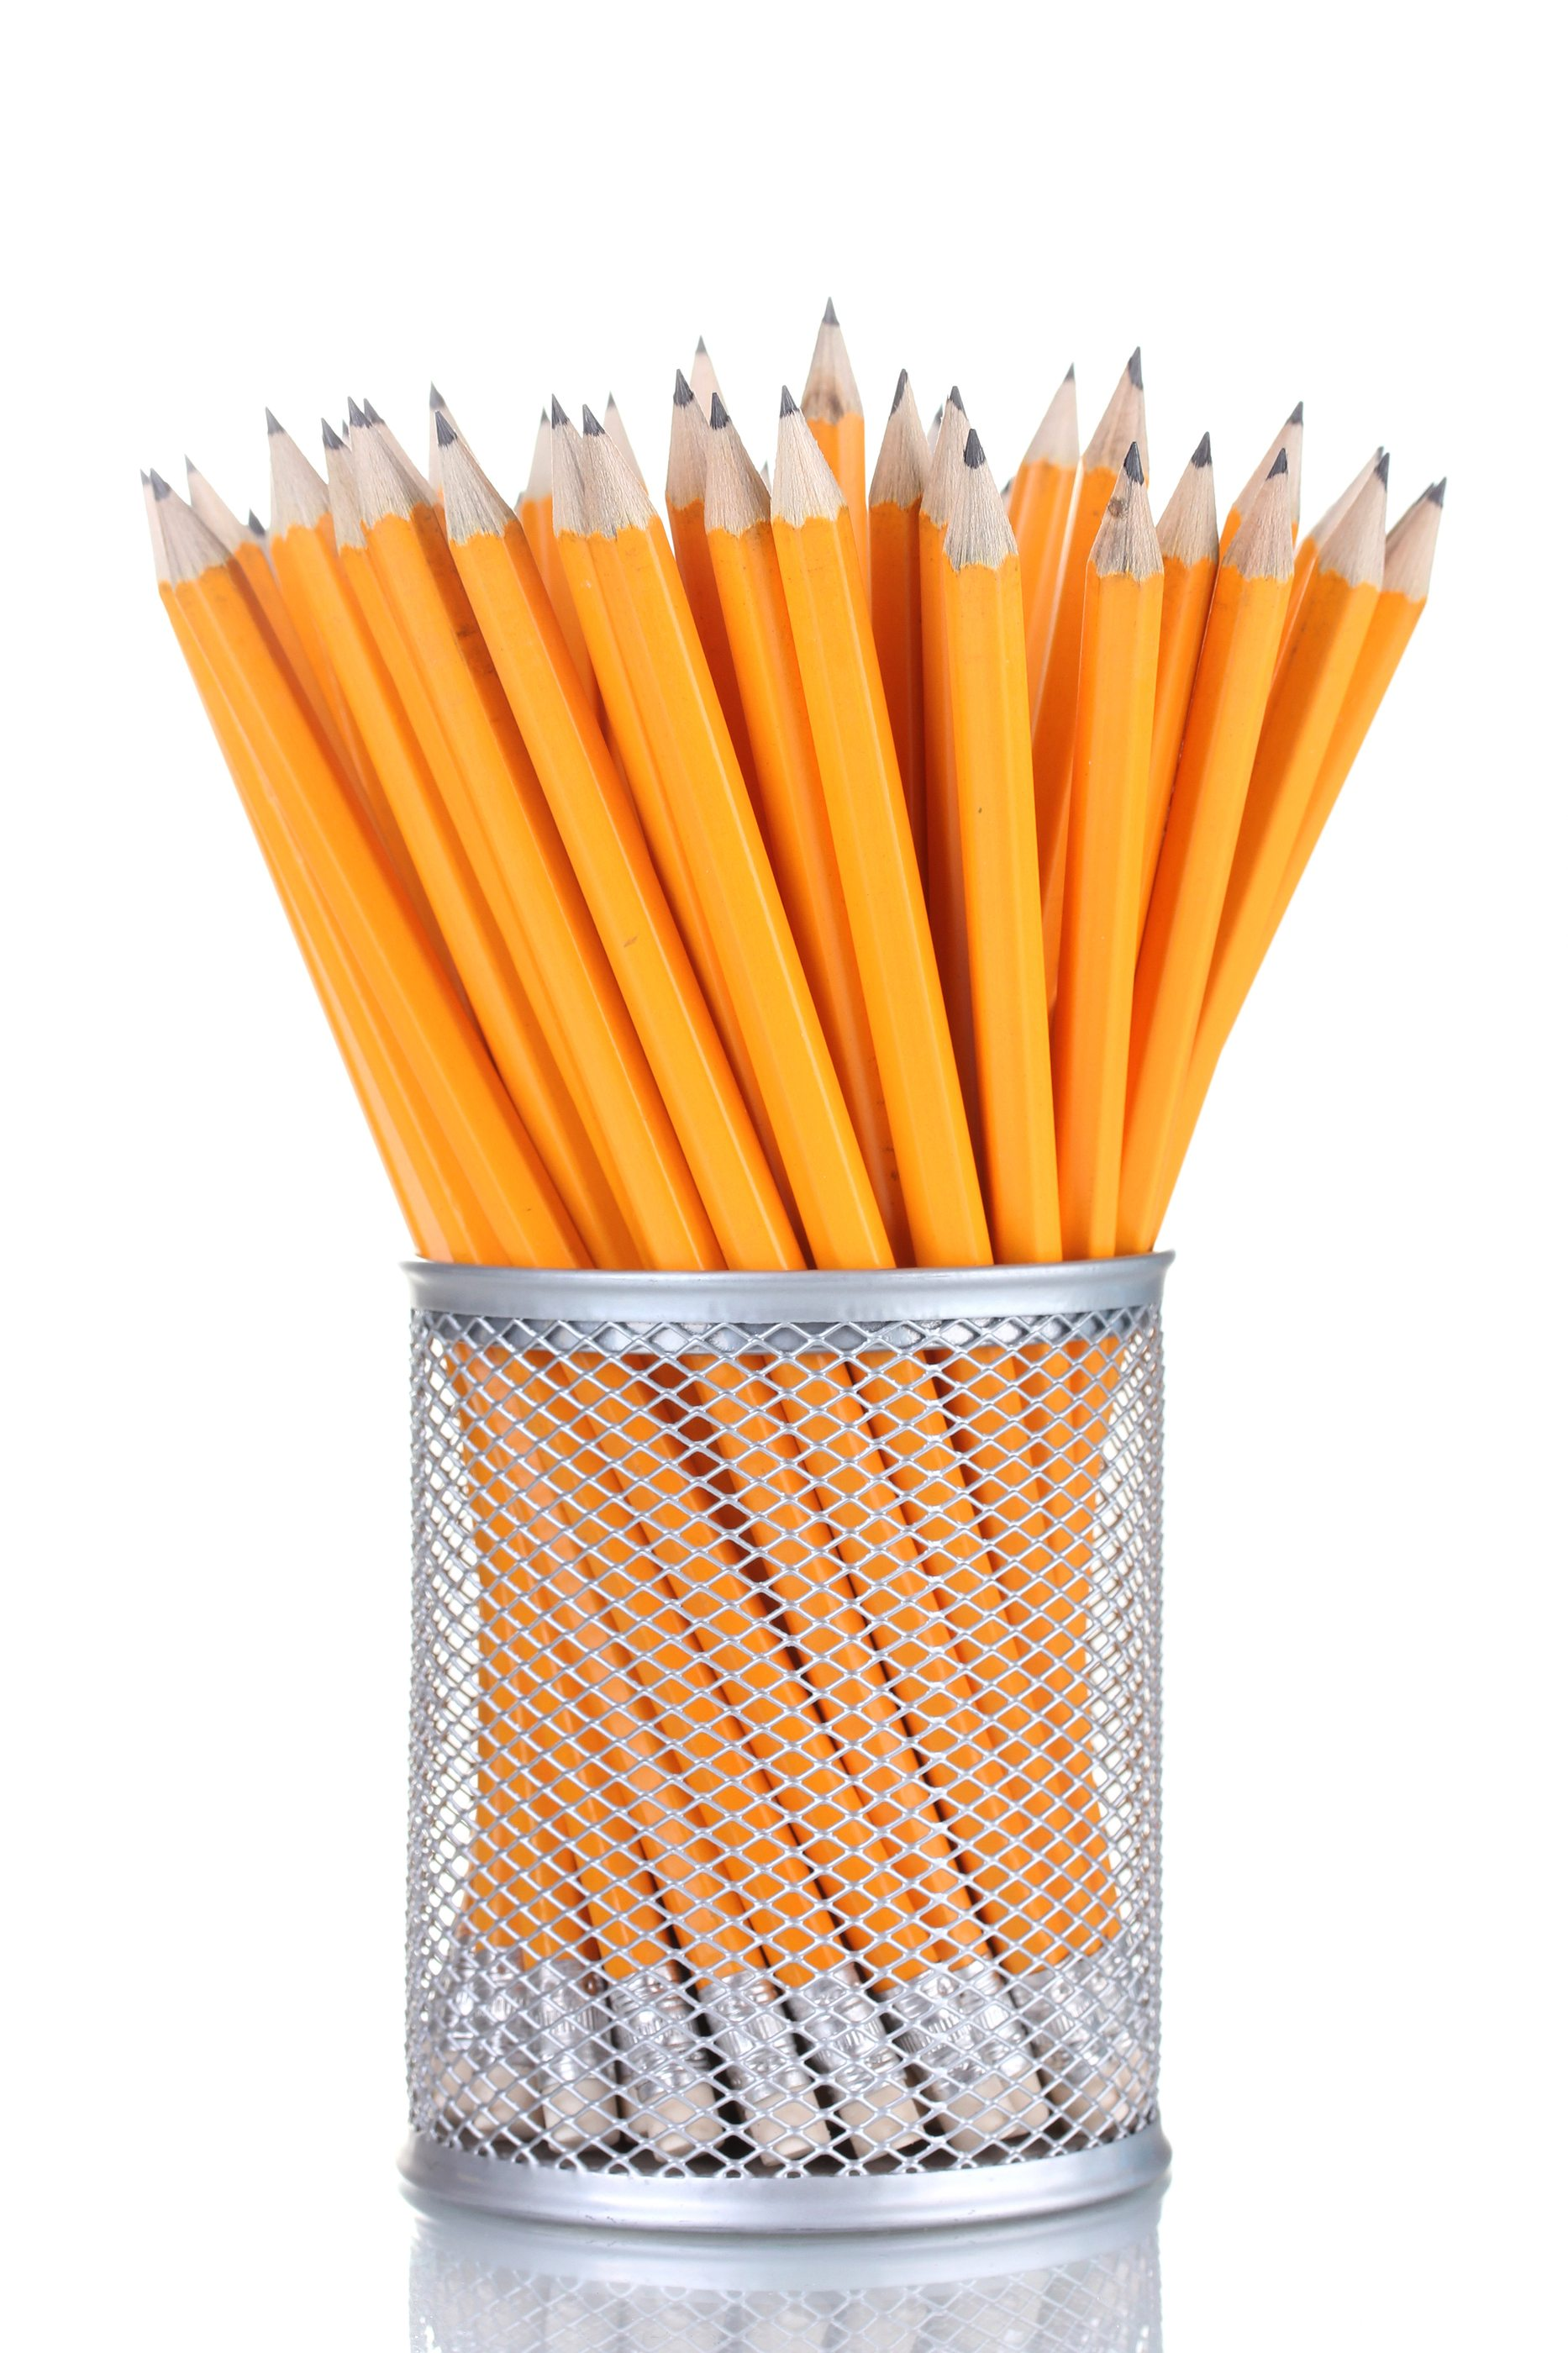 A Bouquet of Freshly Sharpened Pencils – The Thoughts and ...